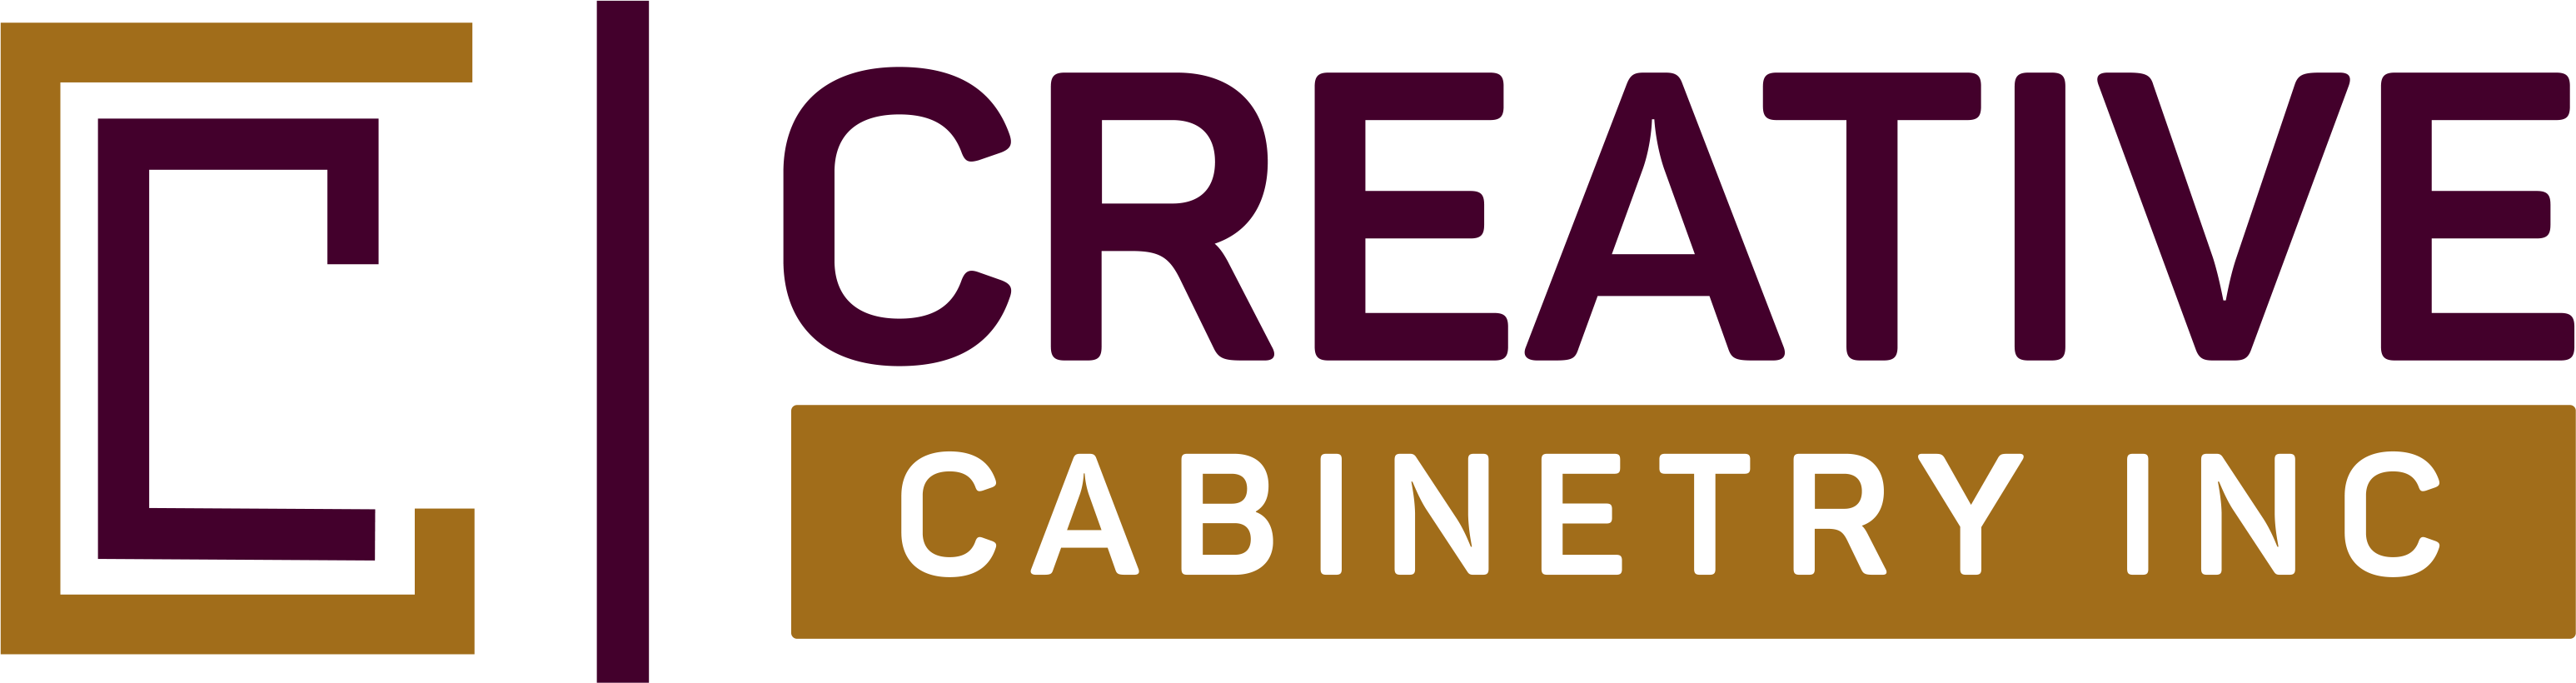 Creative Cabinetry Inc